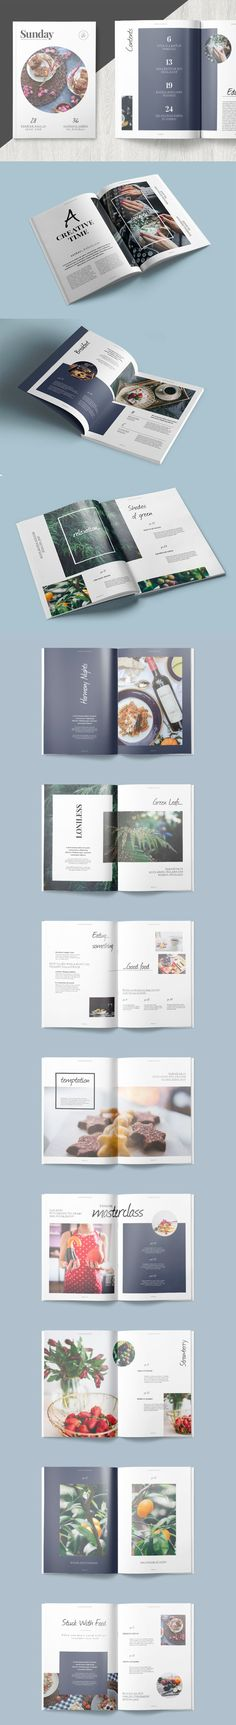 1000 images about international sizes on pinterest for Letter size brochure template